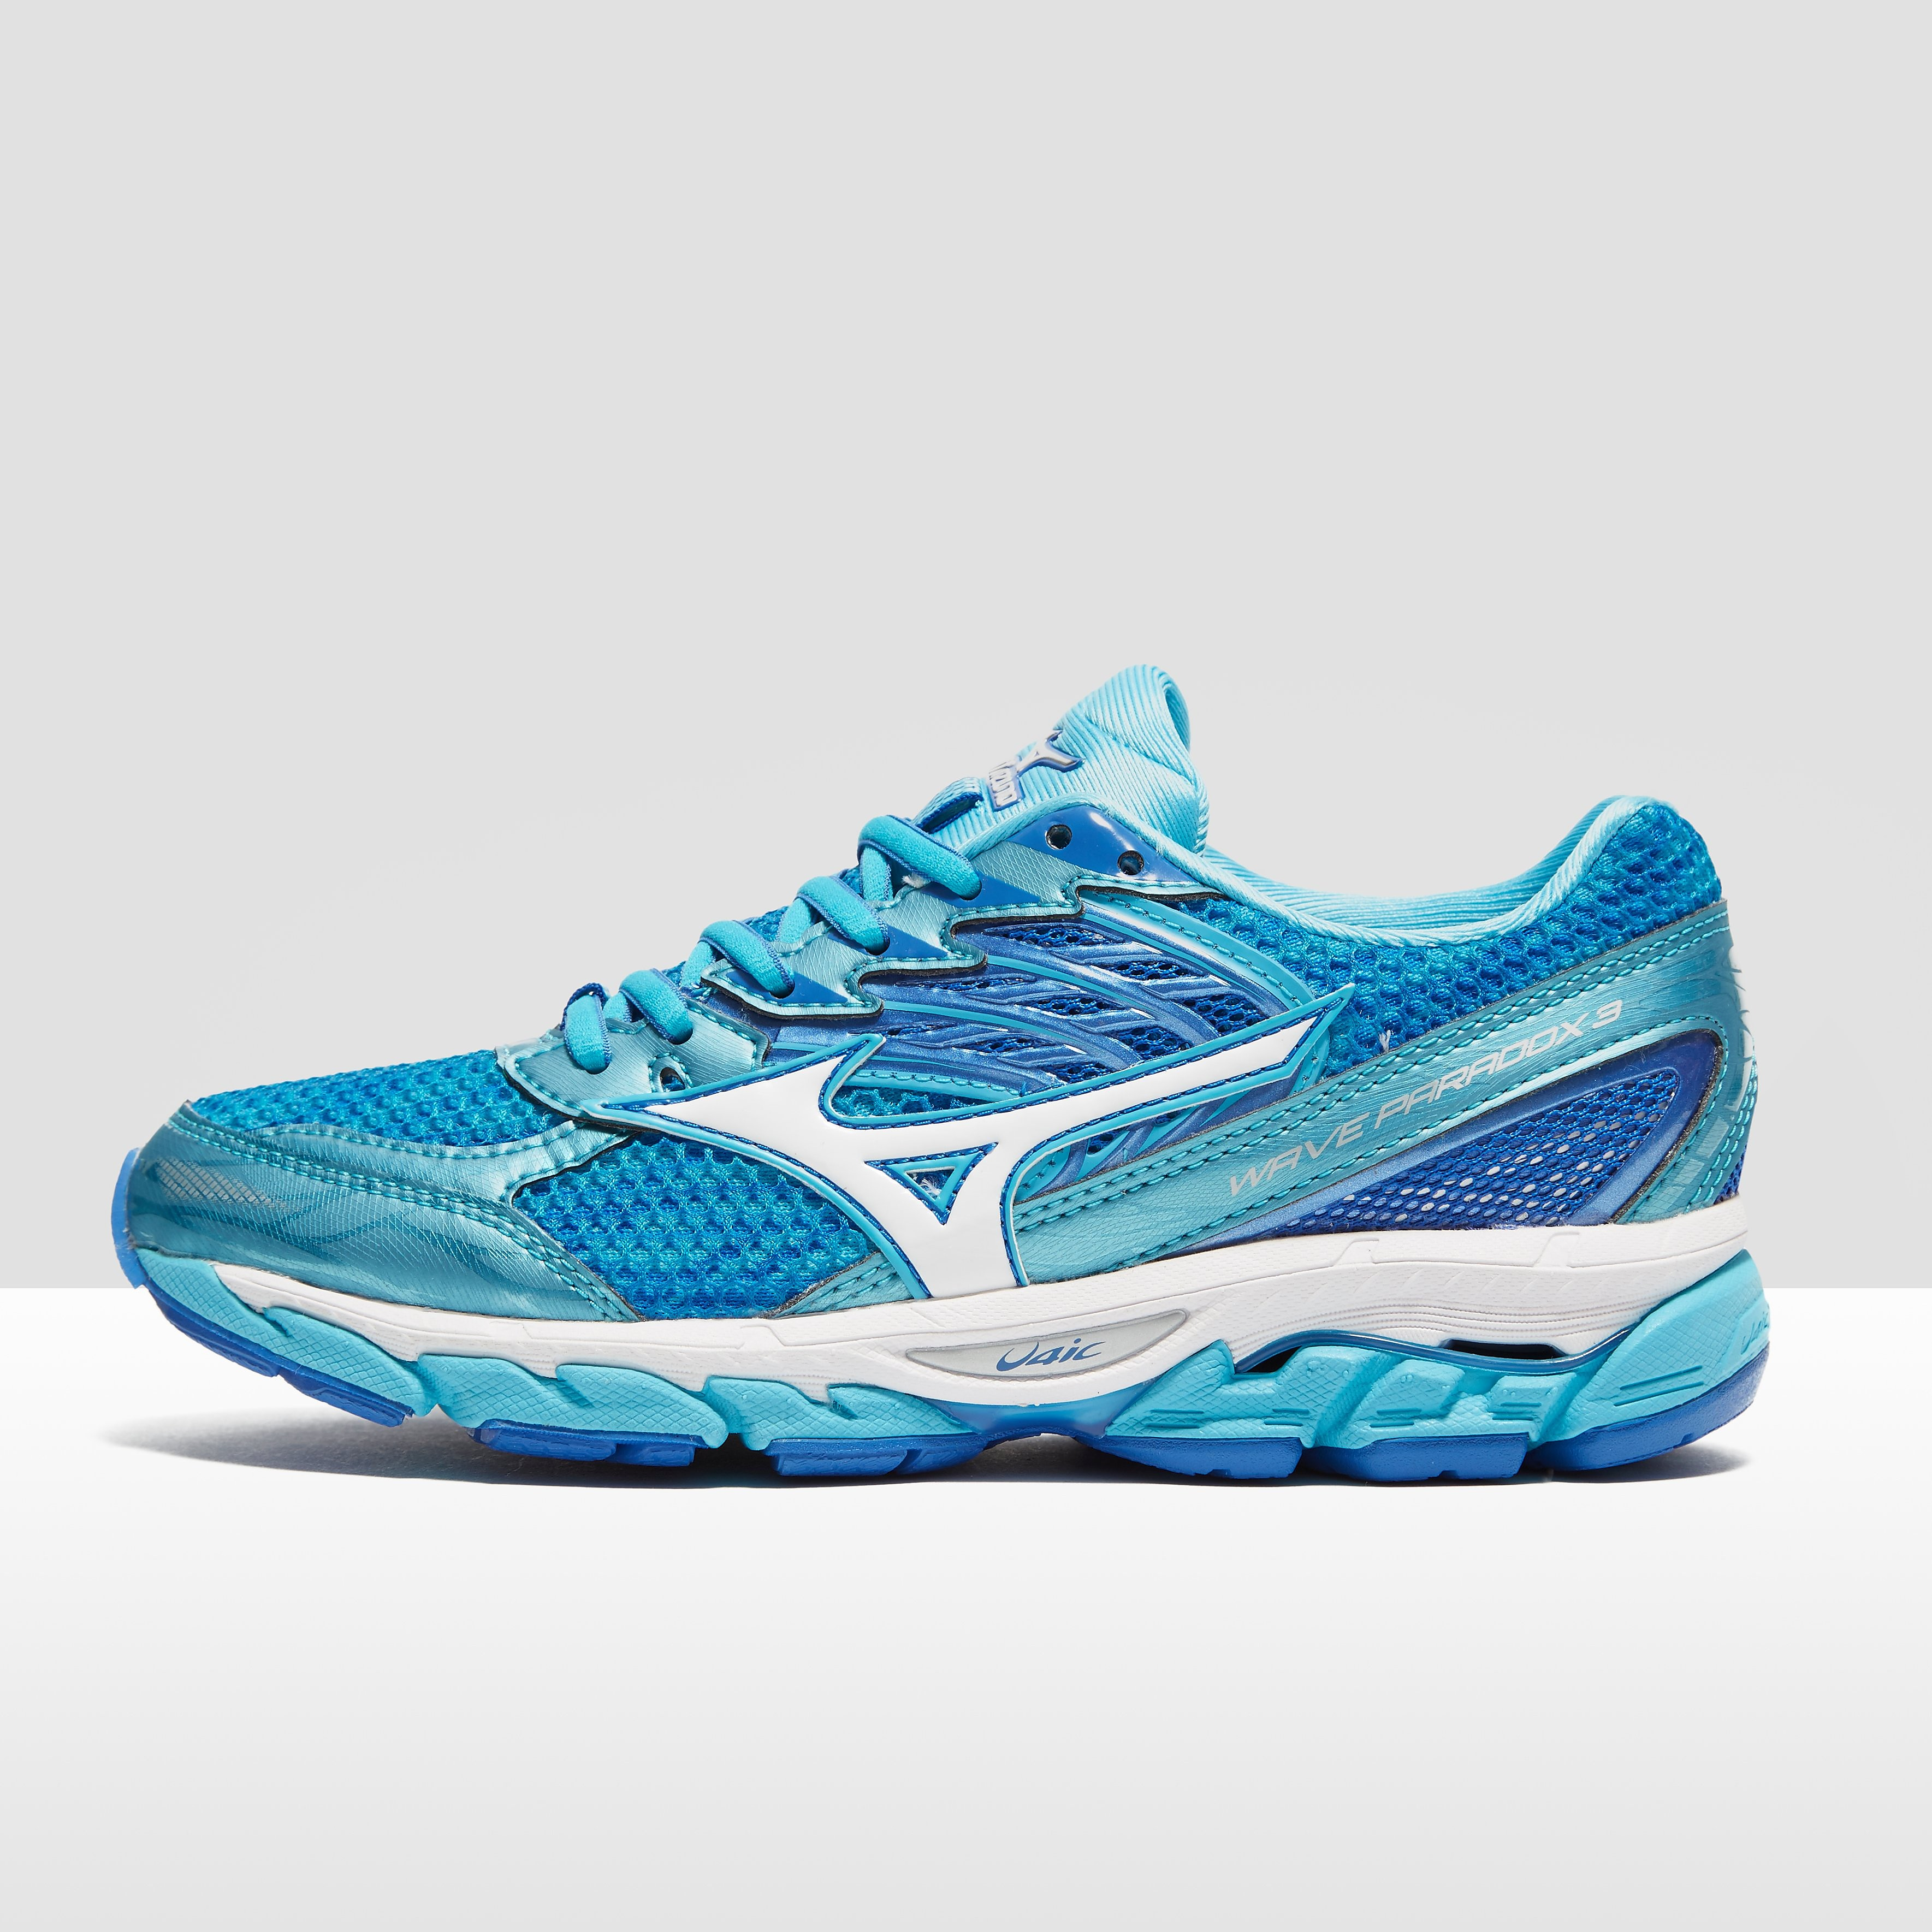 Mizuno Wave Paradox 3 Women's Running Shoes